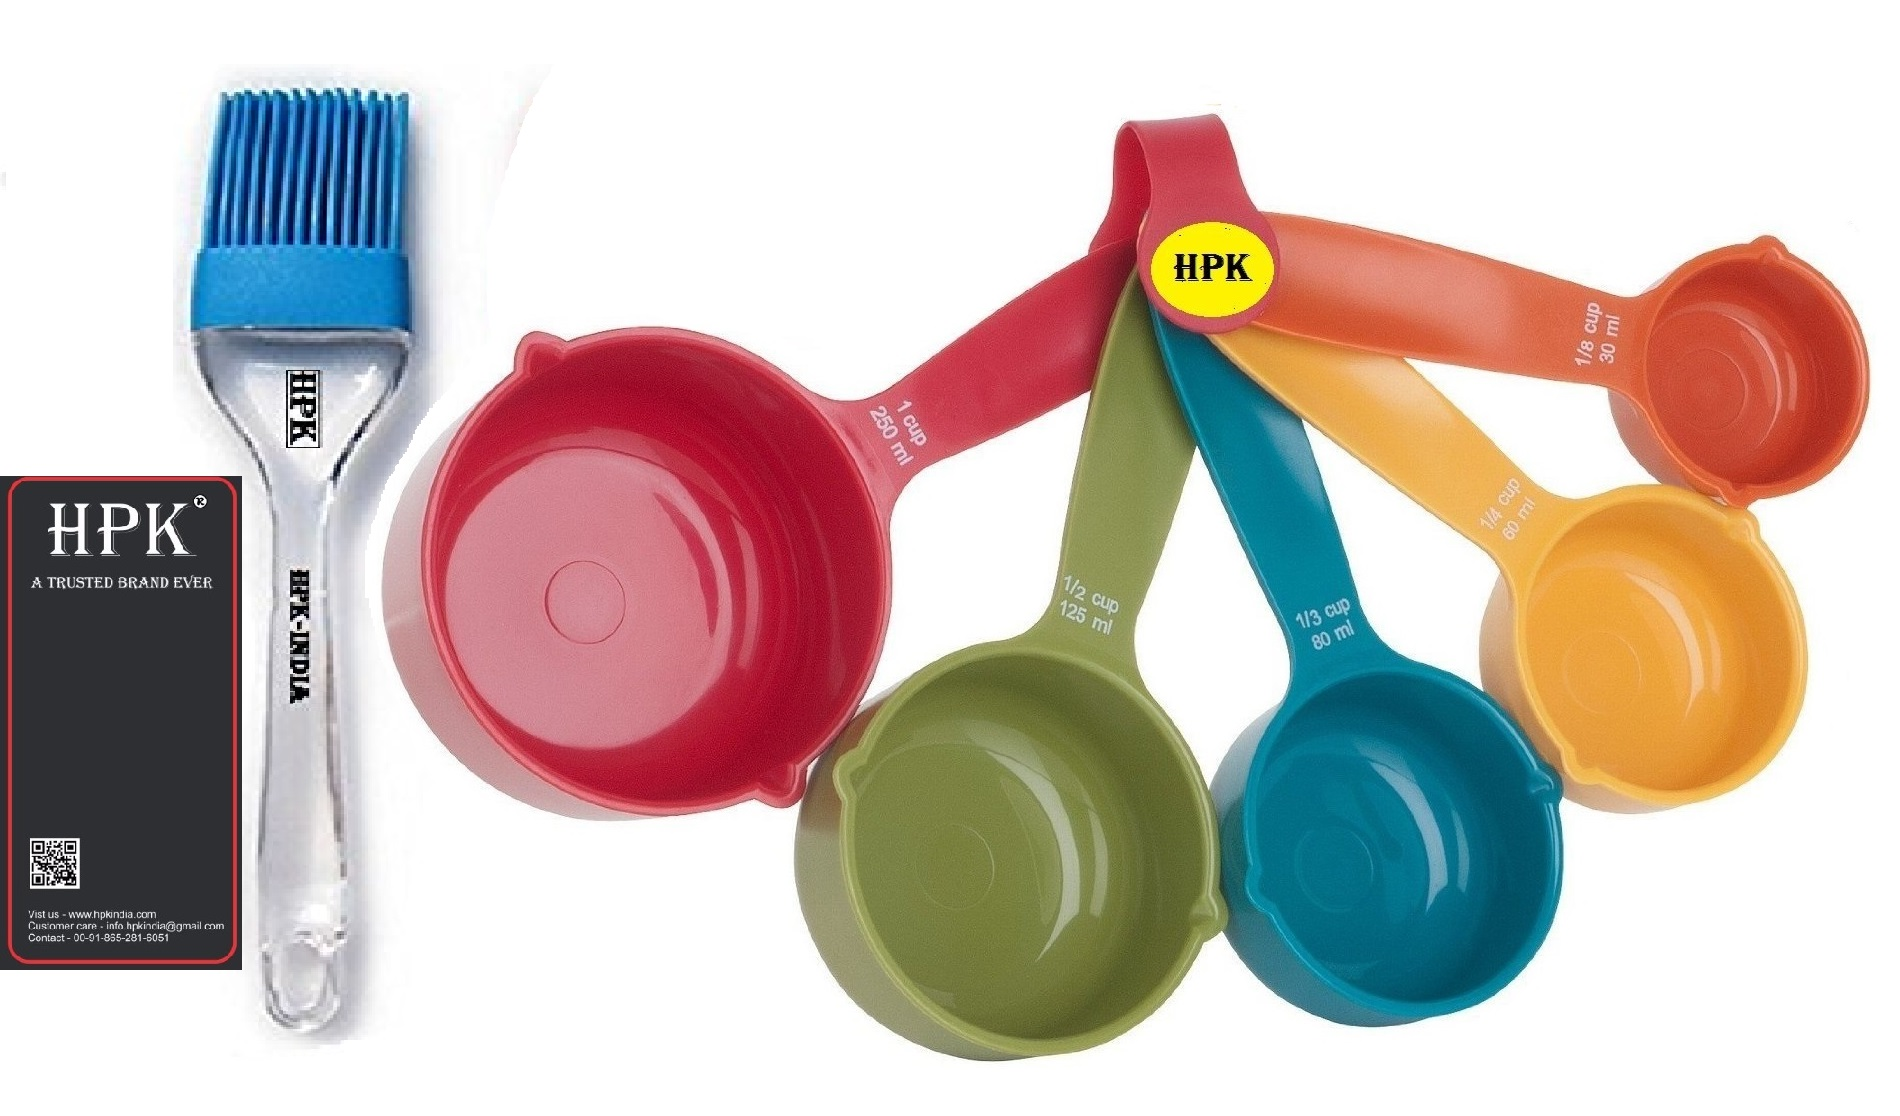 hpk-Measurement-Measuring-Cups-And-Spoons-with-pastry brush